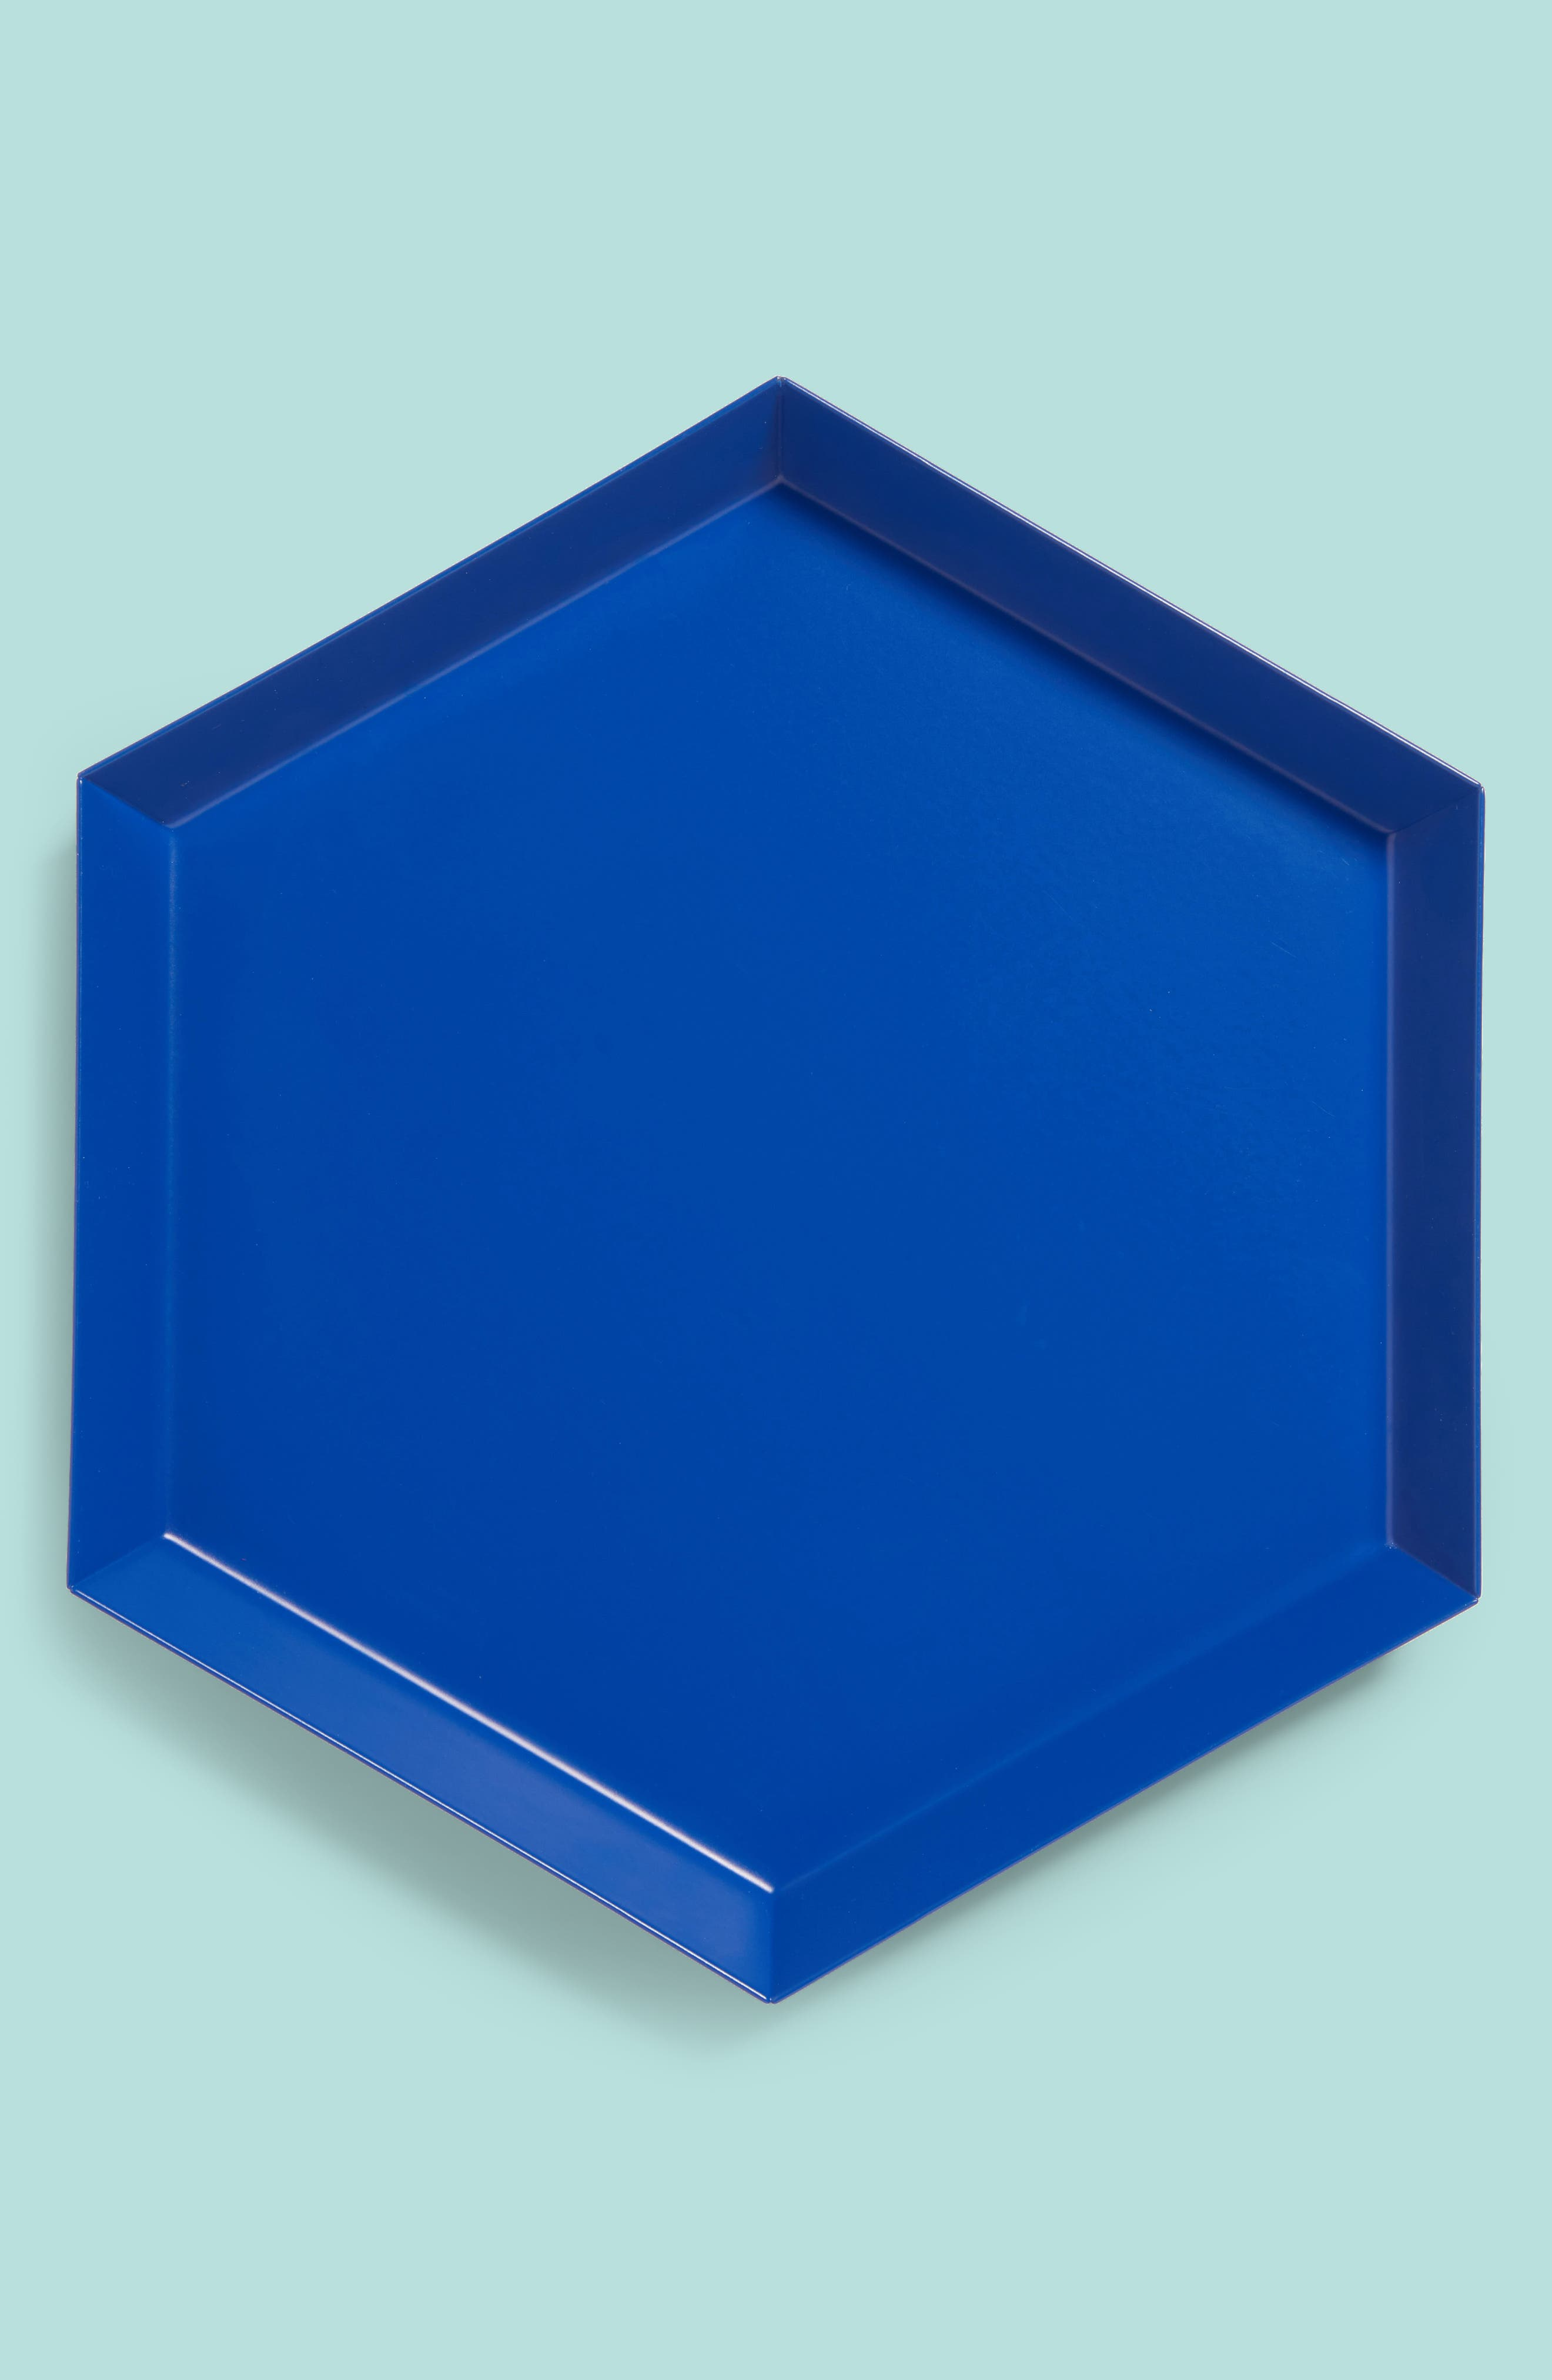 Small Kaleido Powder Coated Steel Tray,                         Main,                         color, Royal Blue